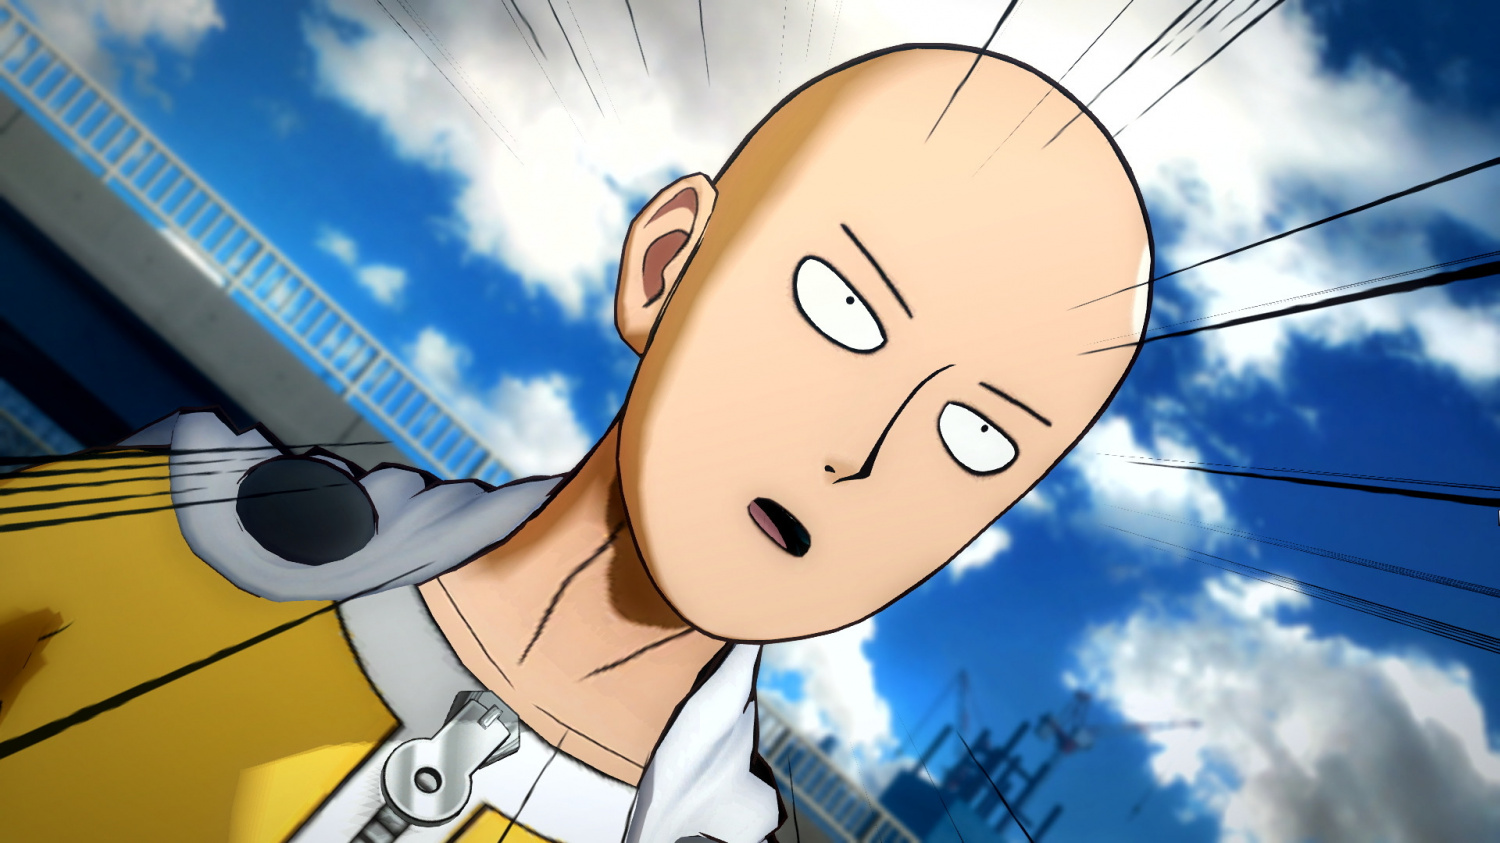 One Punch Man Chapter 139 Release Date, Raw Scans and Read Online